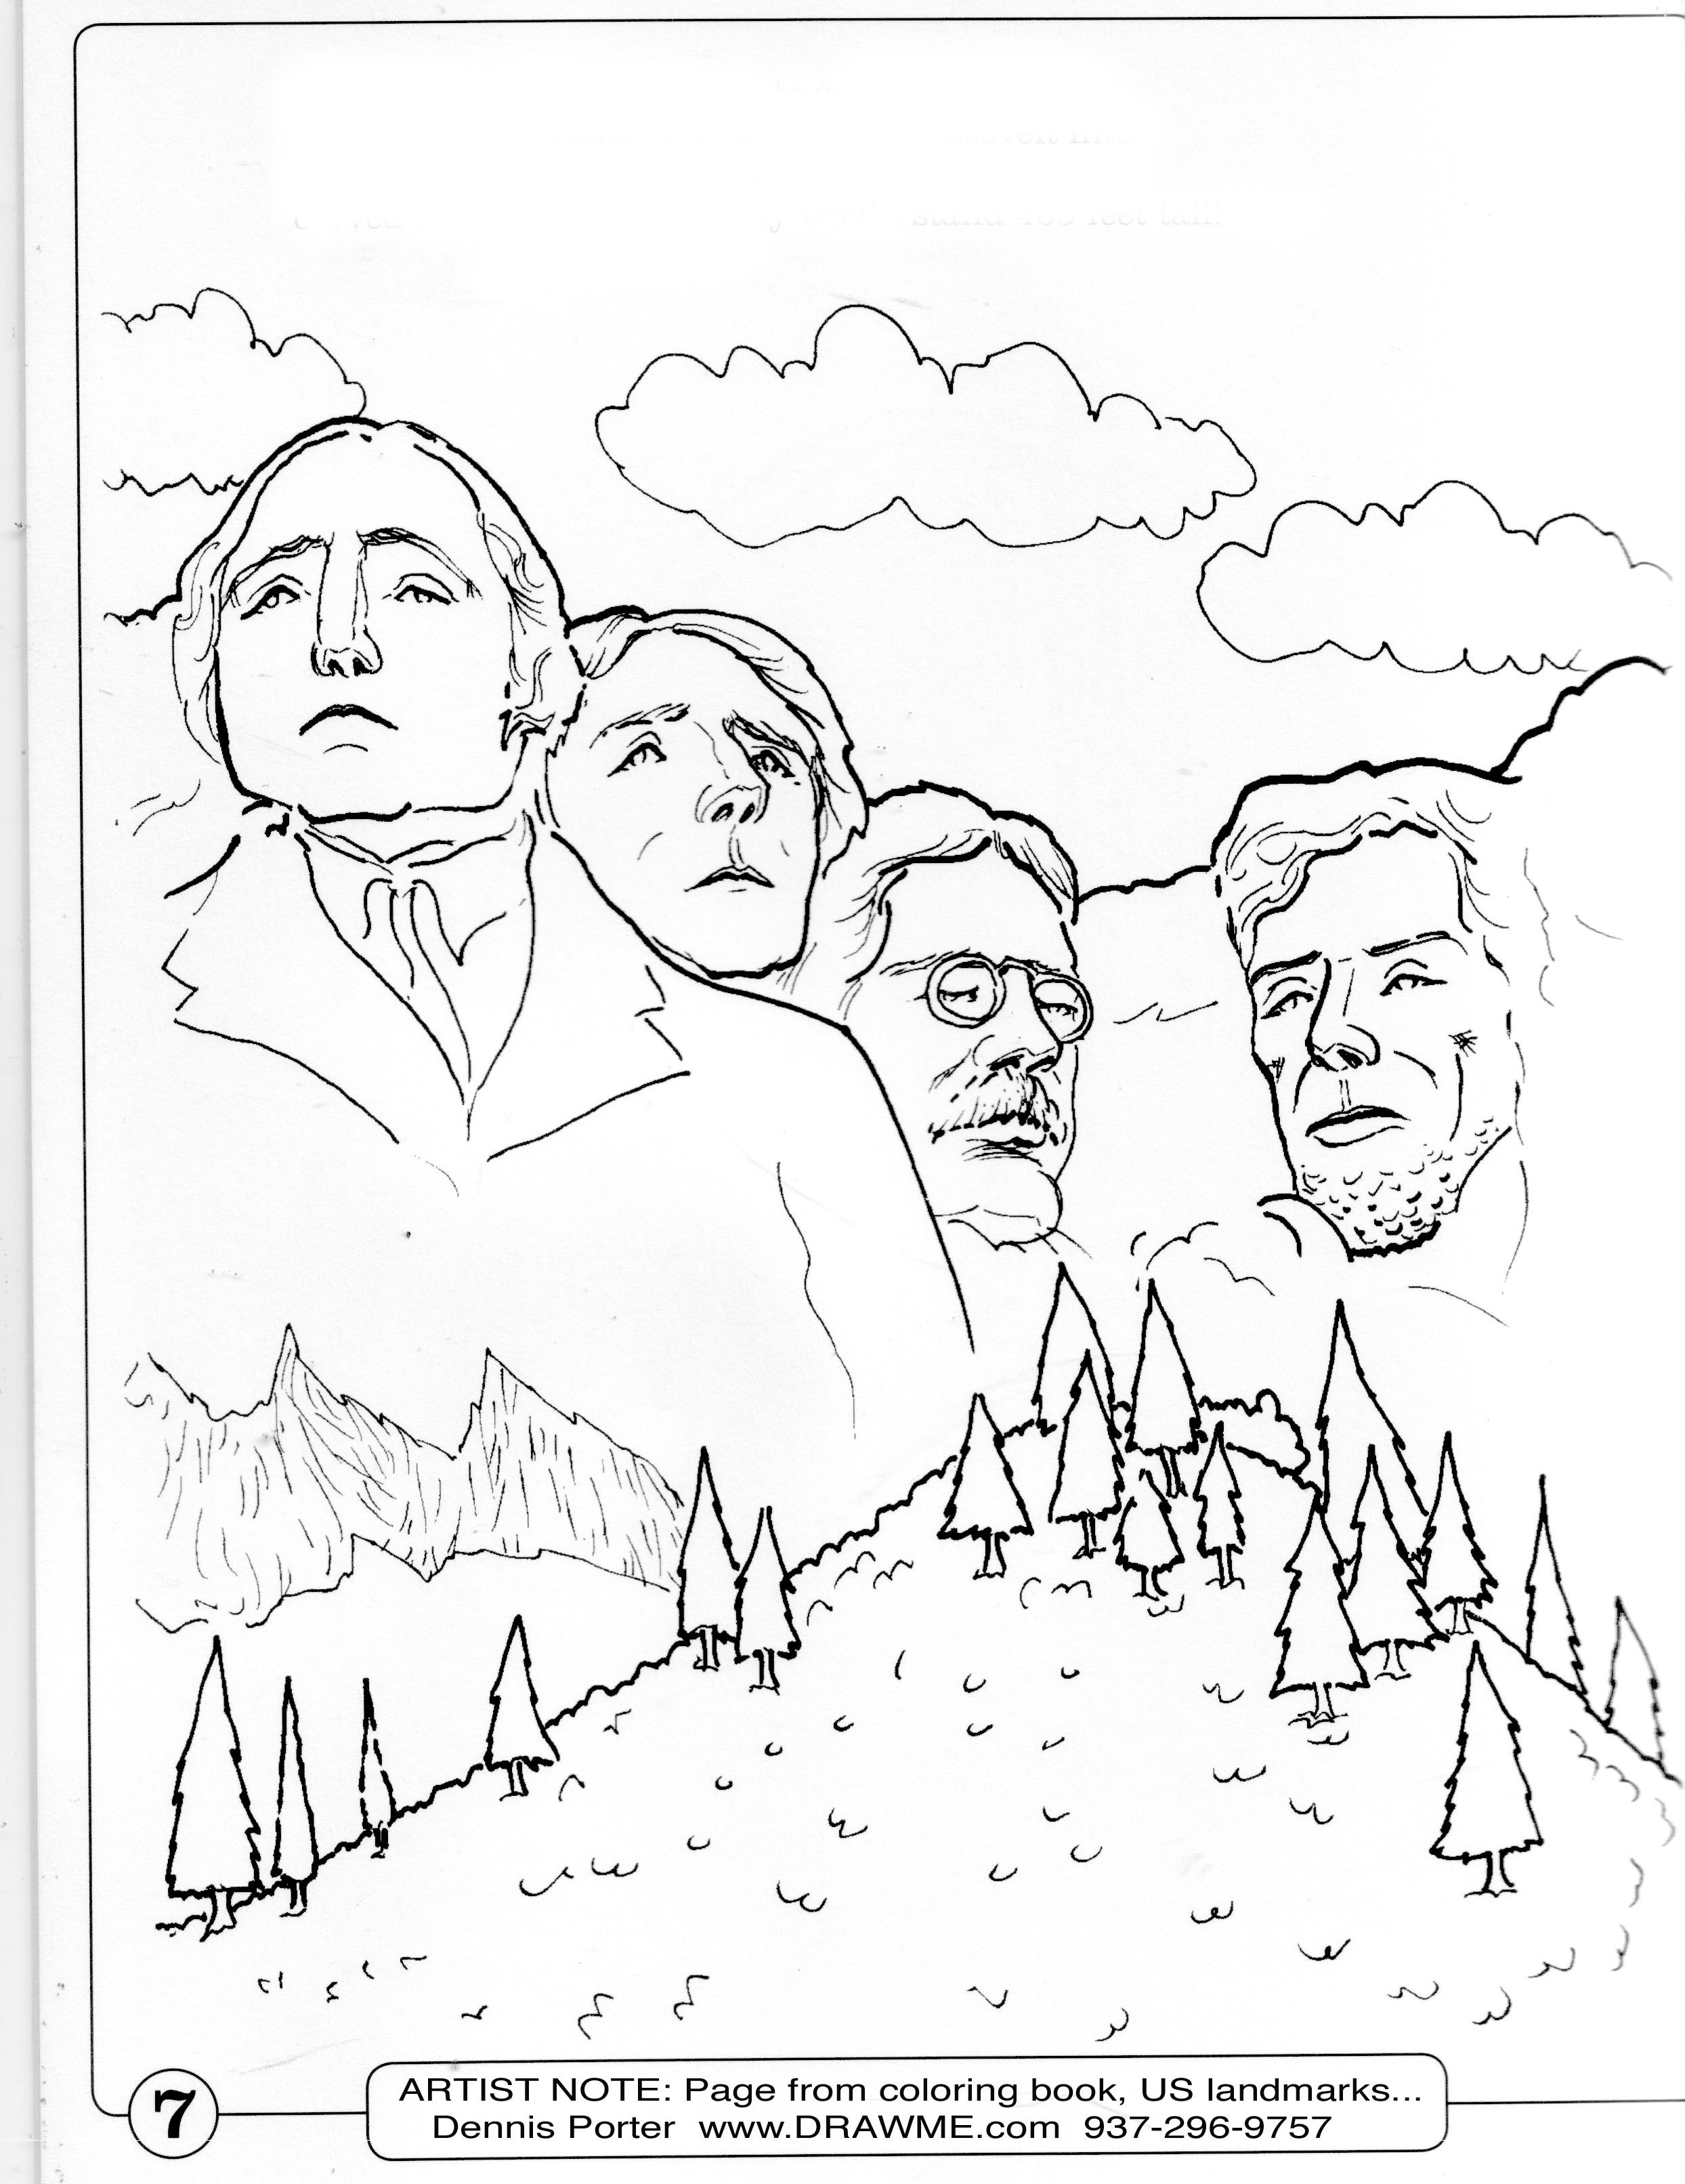 Mount Rushmore For A Coloring Book Caricature Sketch Caricature